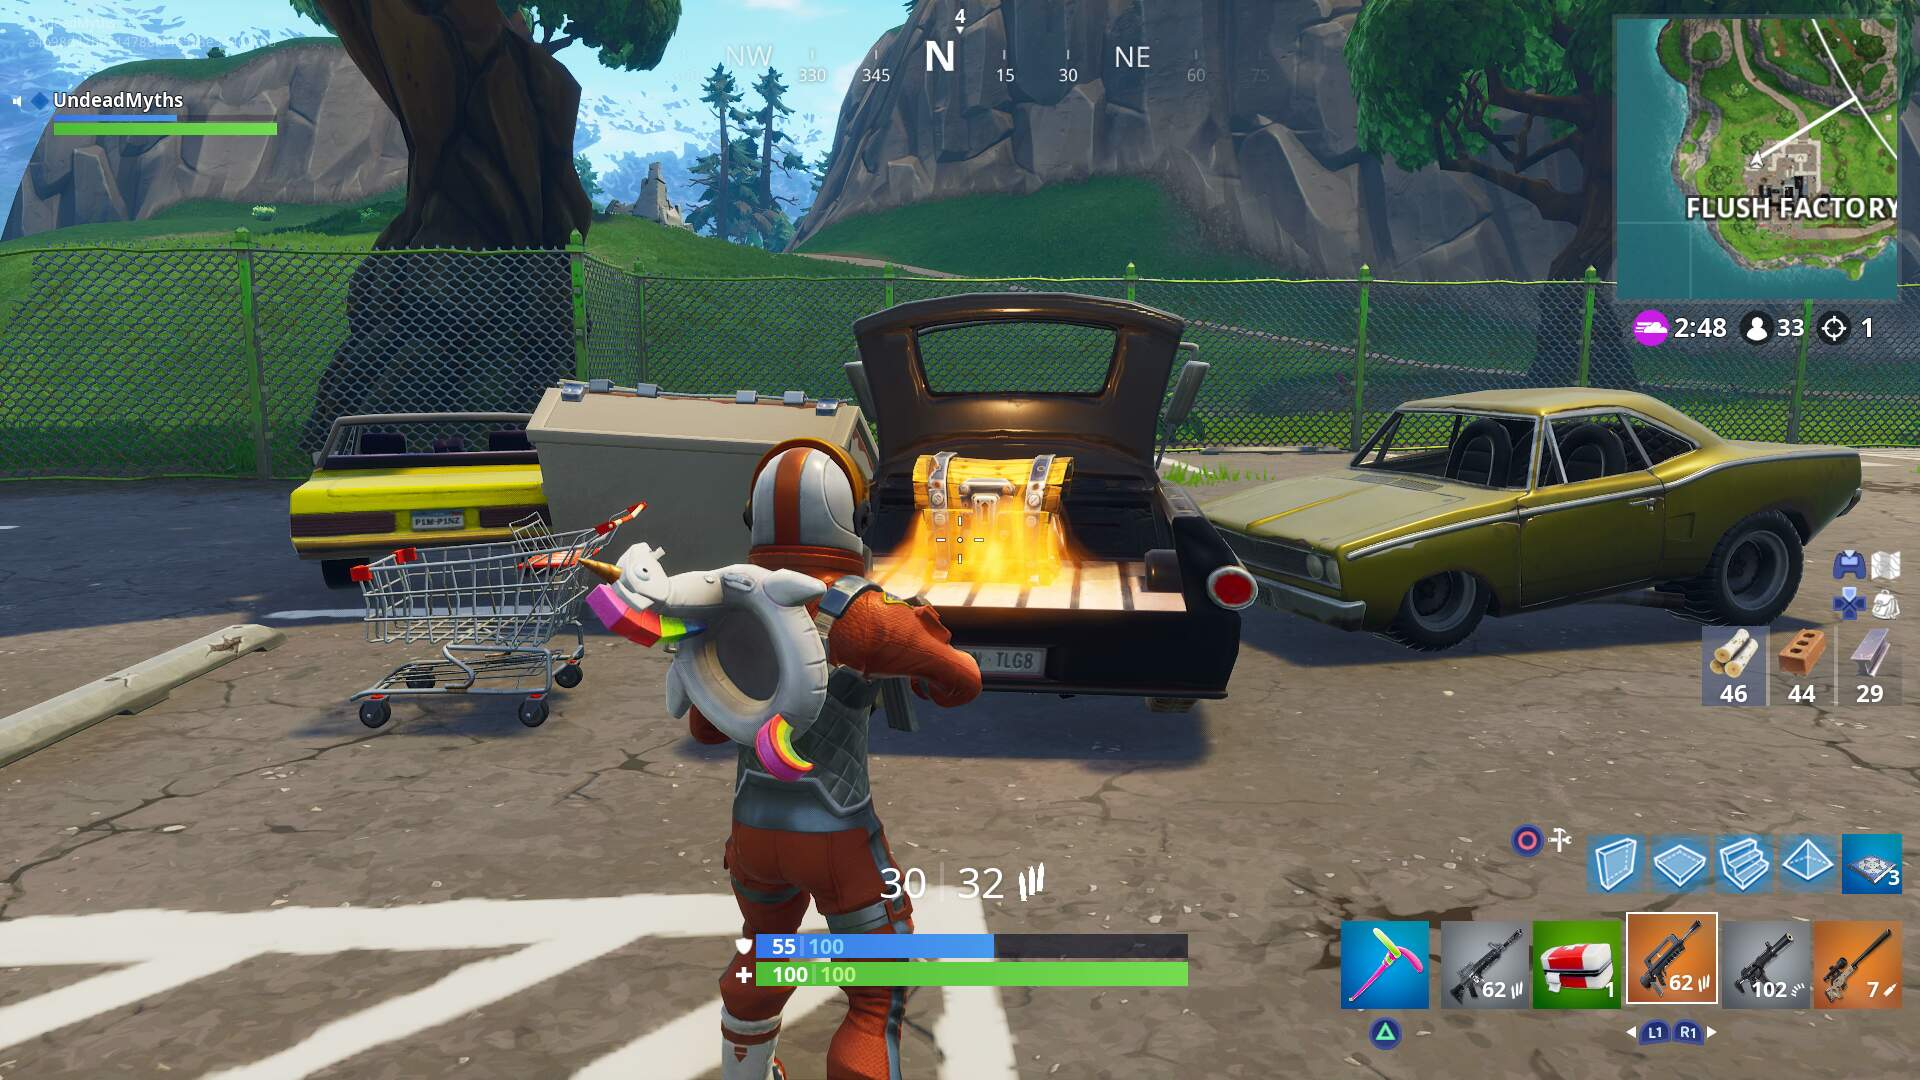 Fortnite Flush Factory Chest Locations - How to Search Chests in Flush Factory to Find All Chests